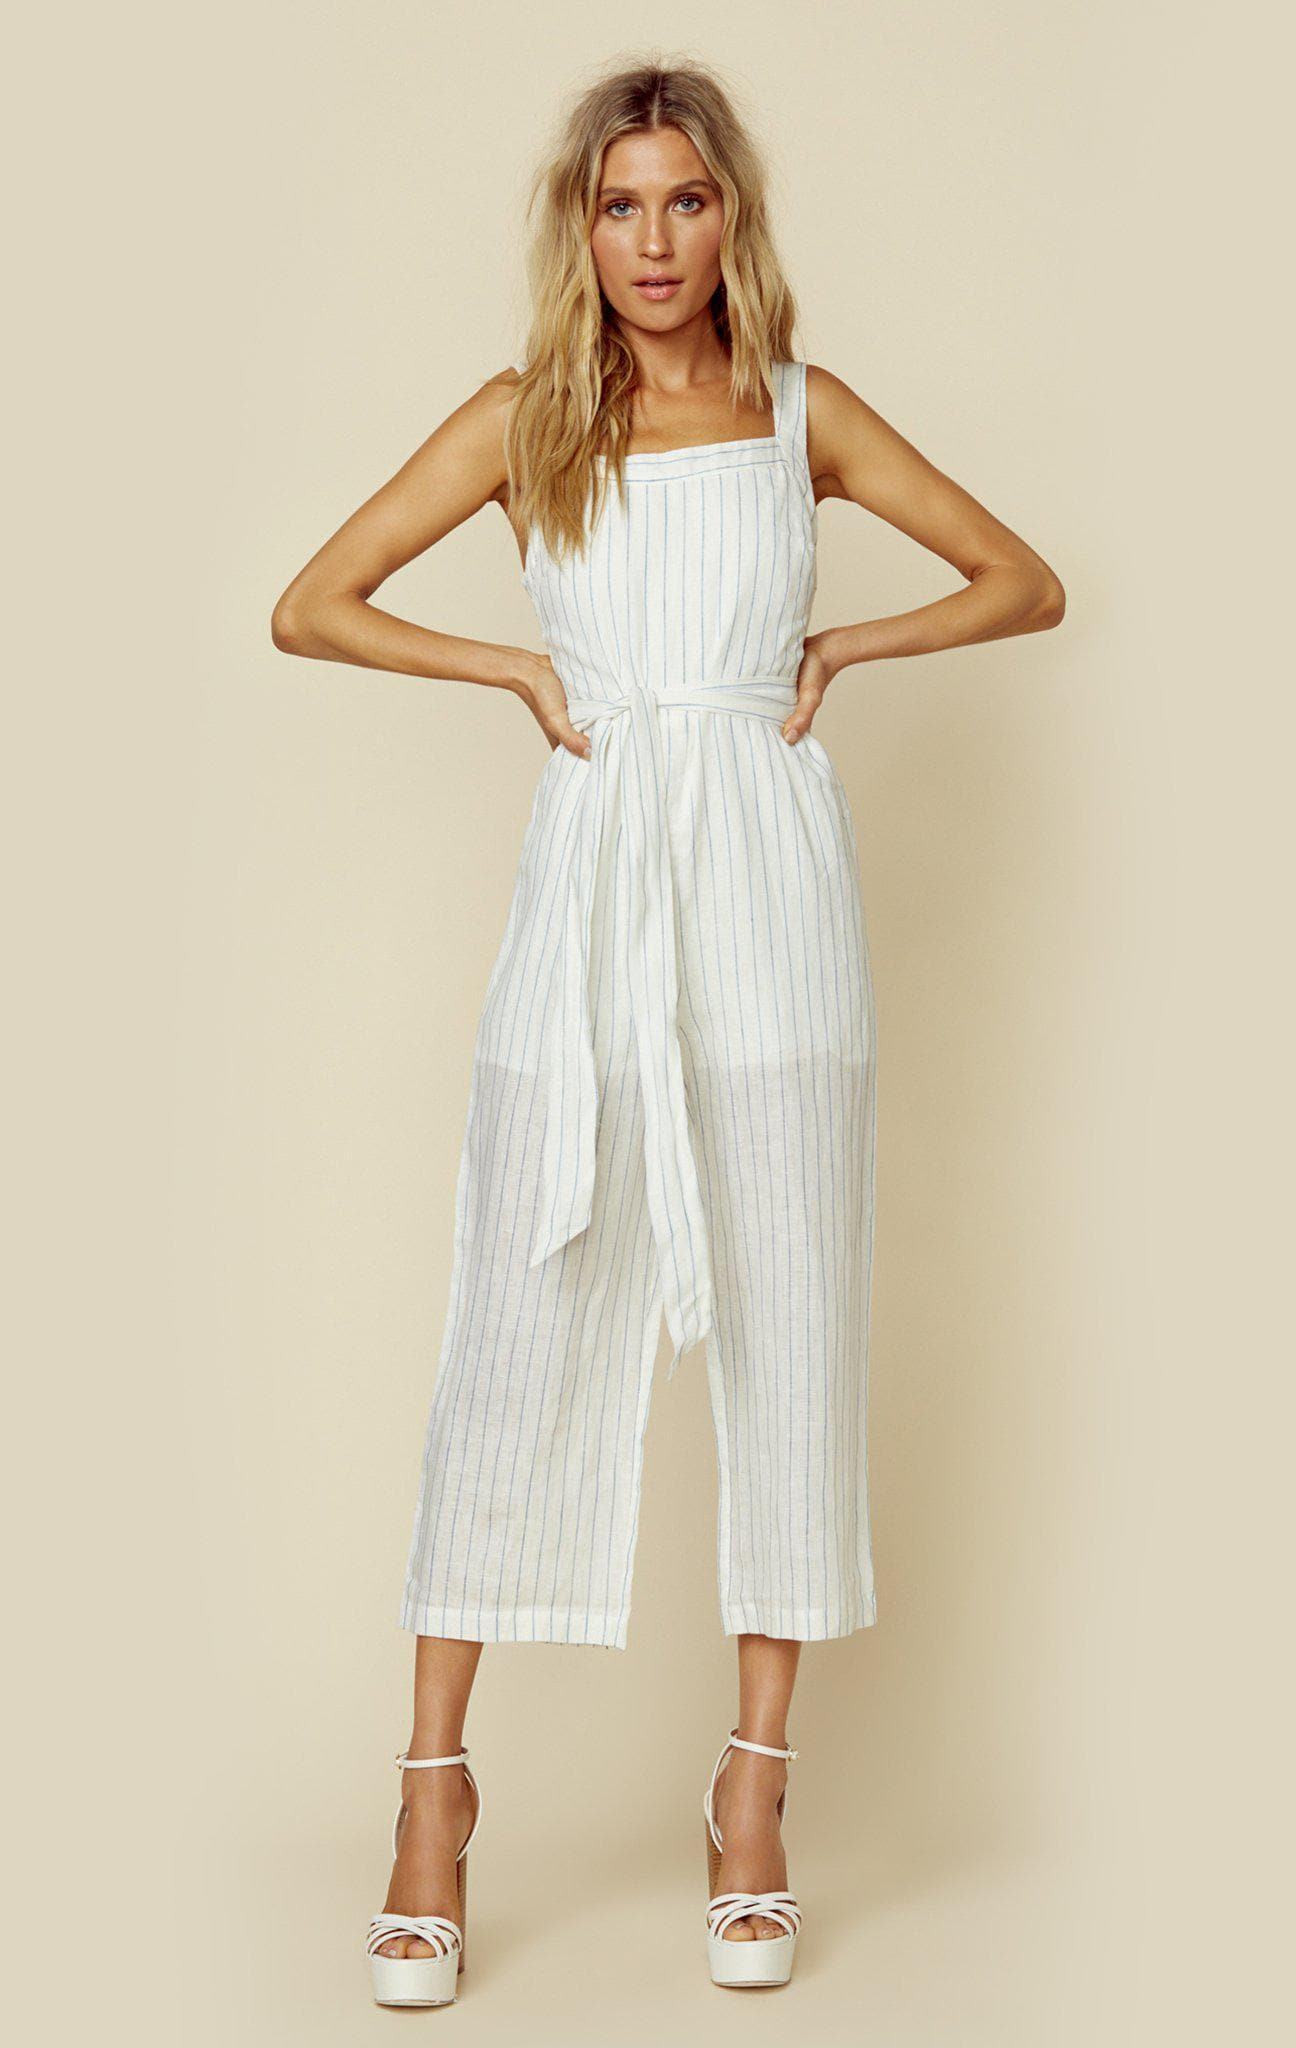 LOST + WANDER GABRIELA JUMPSUIT - WHITE/BLUE STRIPE